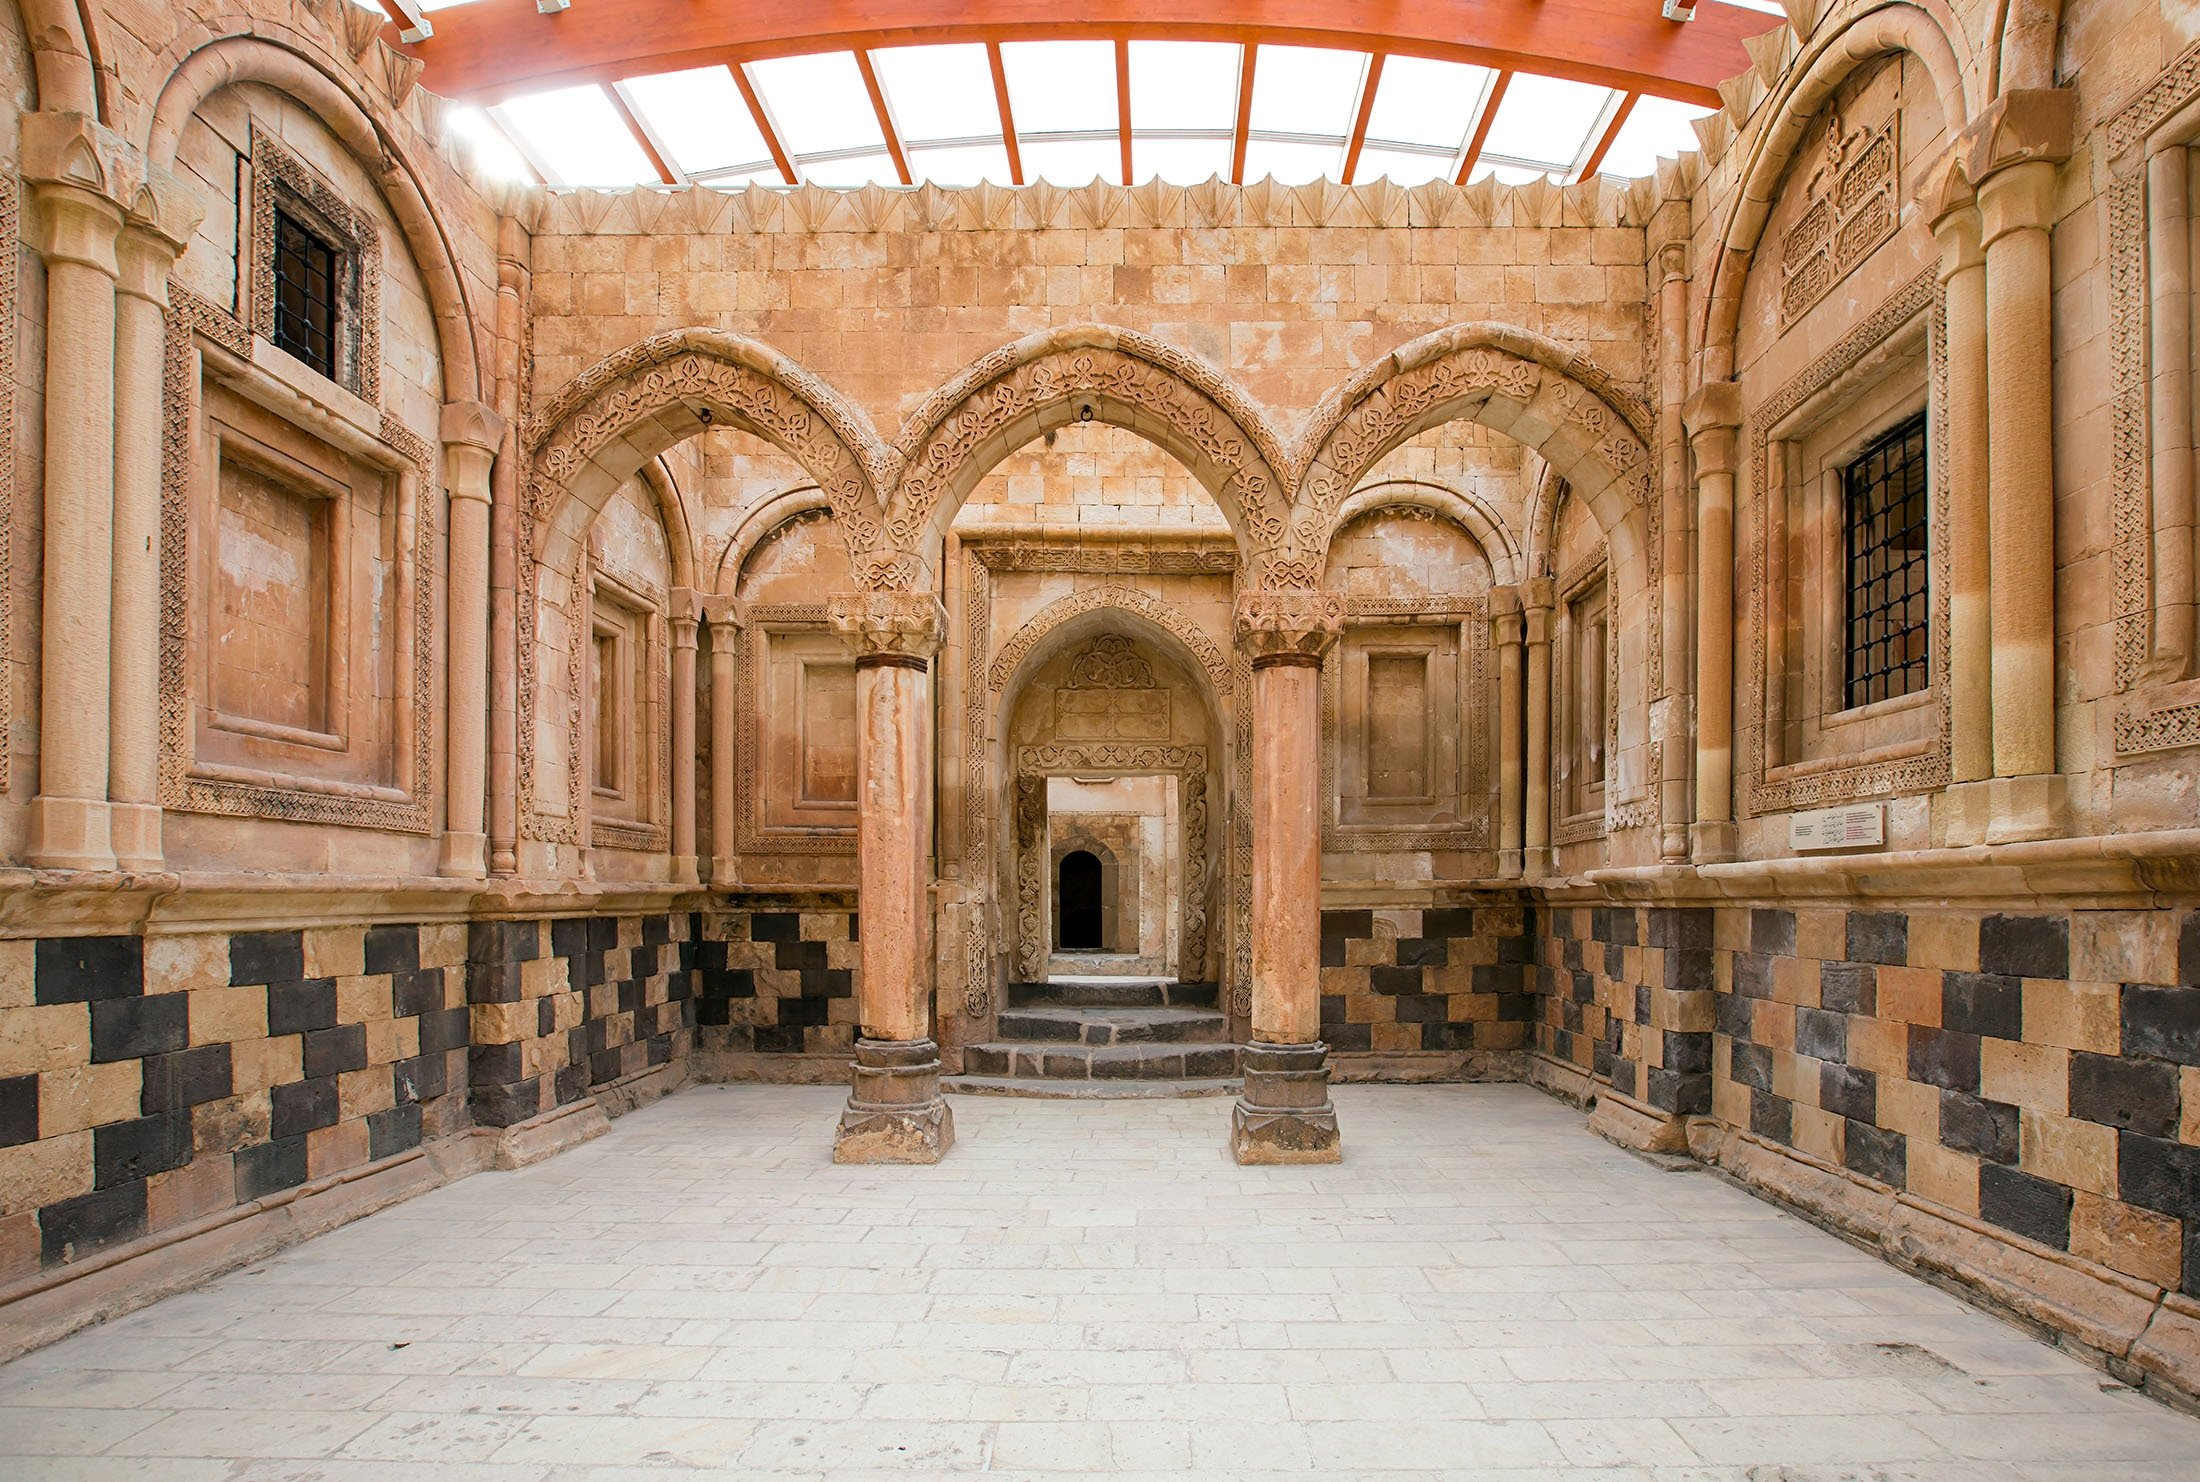 The colonnaded inside of theIshak Pasha Palace can be seen in theDoğubayazıt district of Ağrı, Turkey. (Shutterstock Photo)